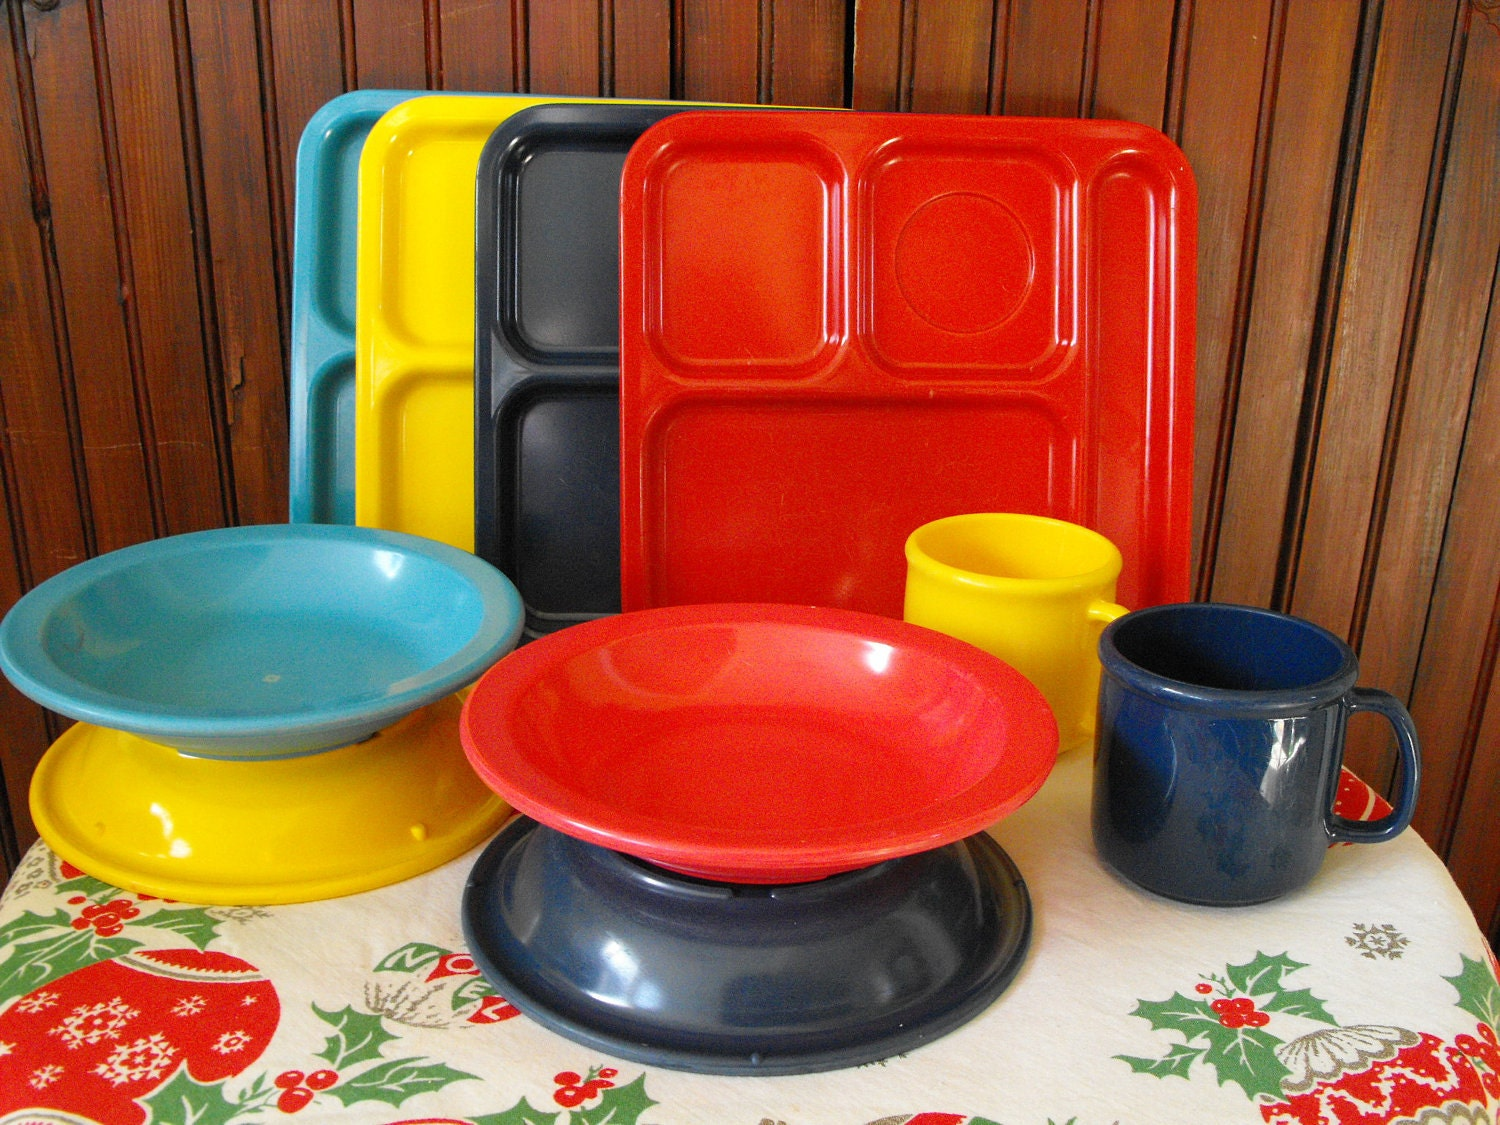 Vintage Texas Ware Melmac Lunch Trays, Dallas Ware Bowls and Cups Primary Colors